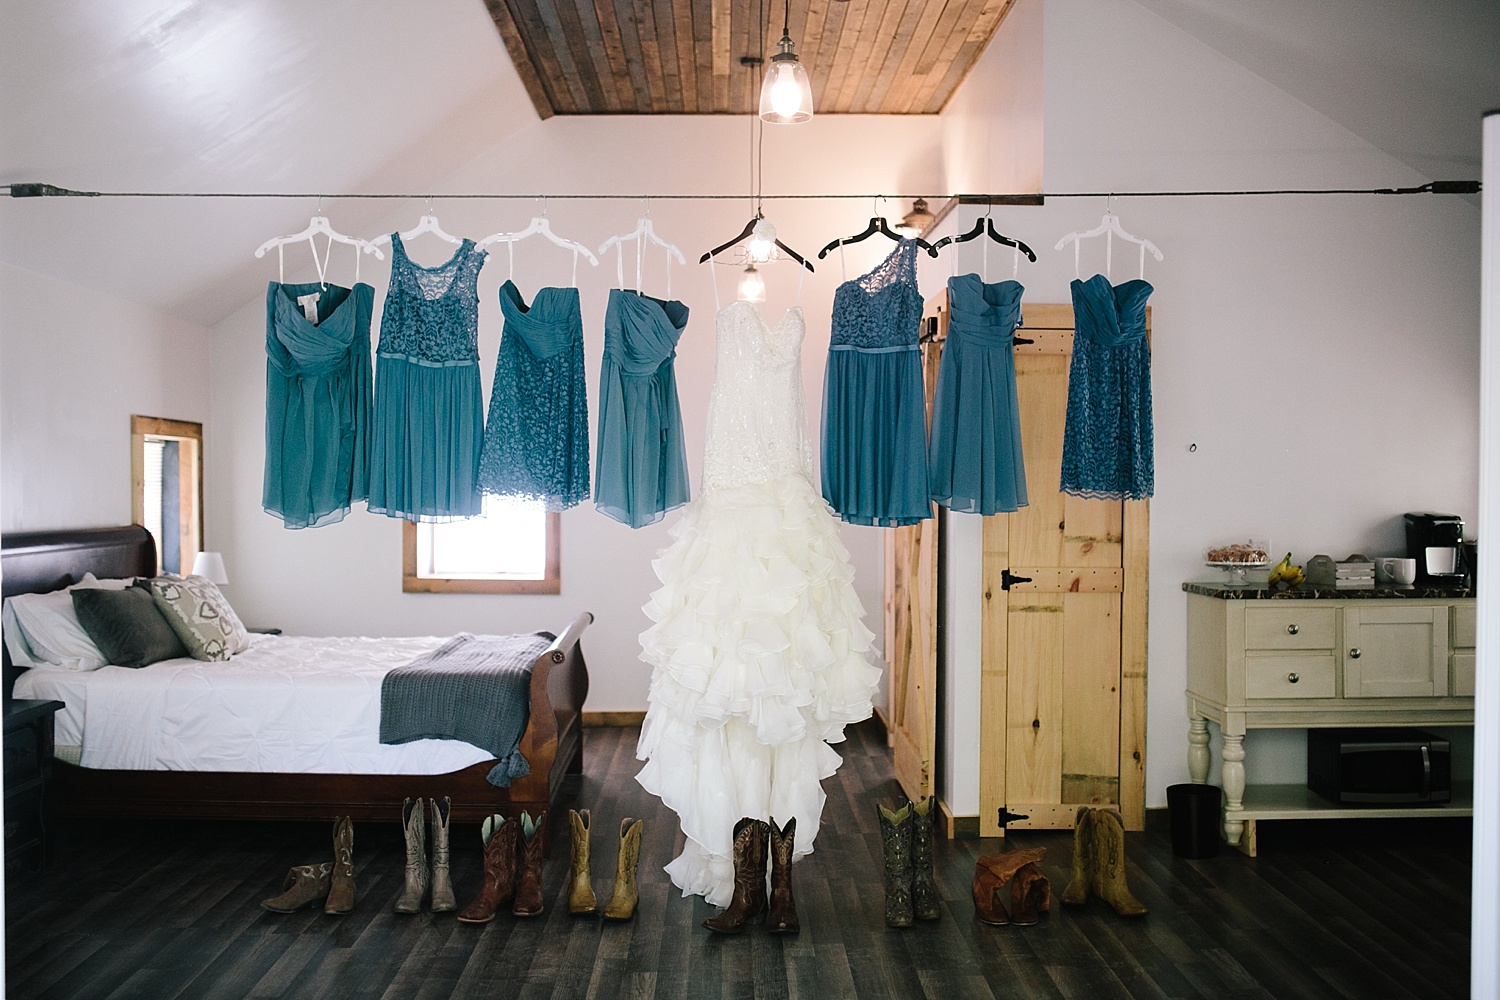 jennyryan_newbeginnings_farmstead_upstatenewyork_wedding_image005.jpg